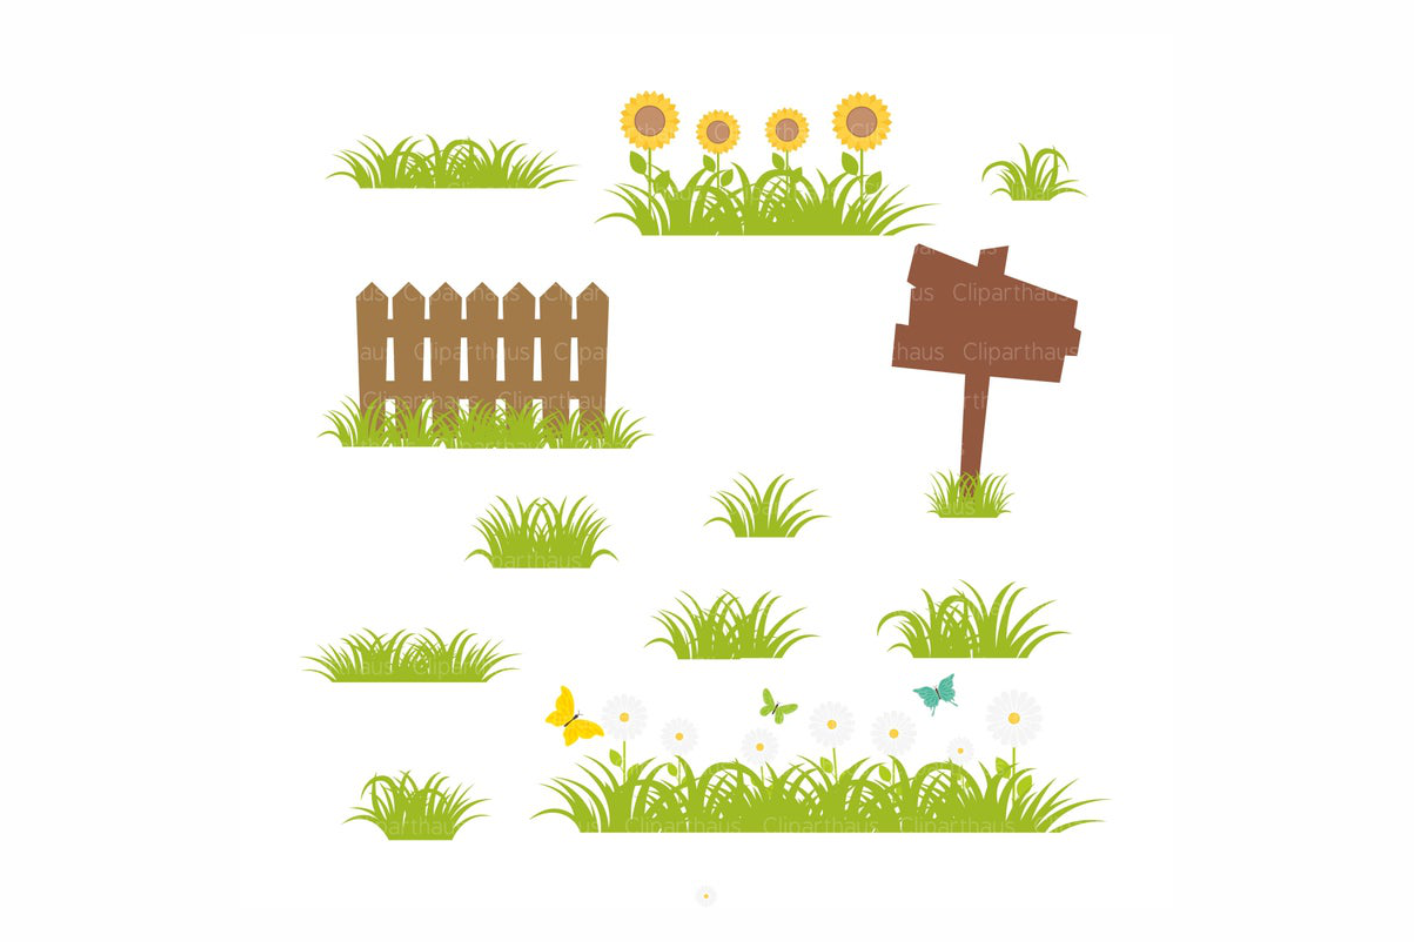 Download Free Grass Clipart Graphic By Svg Den Creative Fabrica for Cricut Explore, Silhouette and other cutting machines.